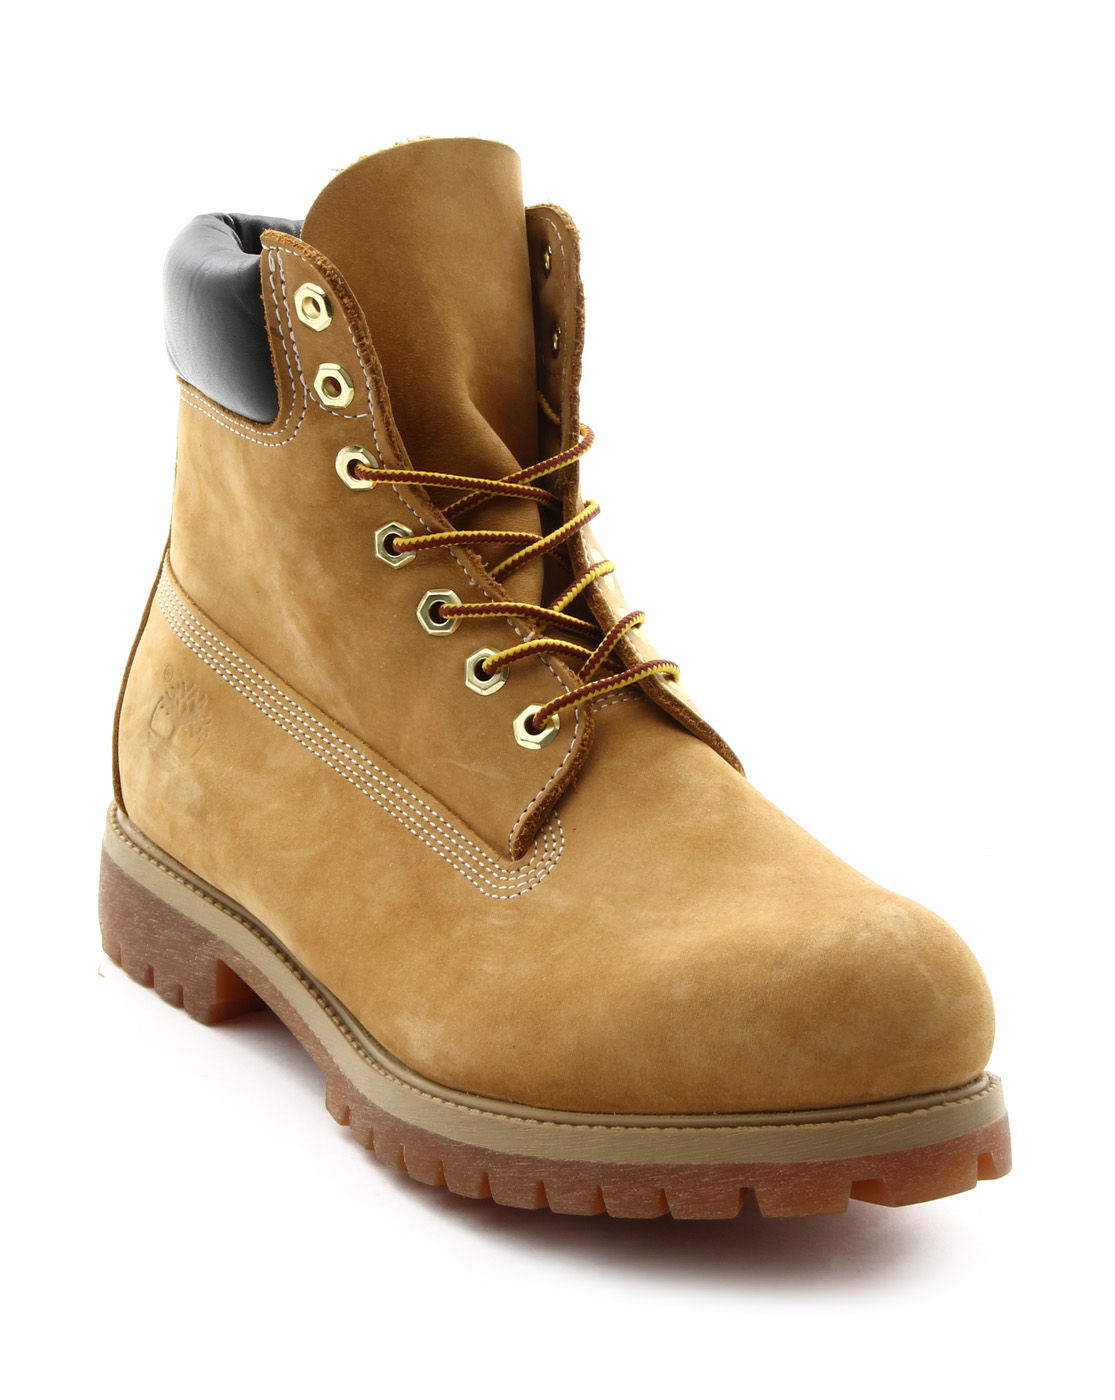 Beige Boots Galleryhipcom The Hippest Galleries